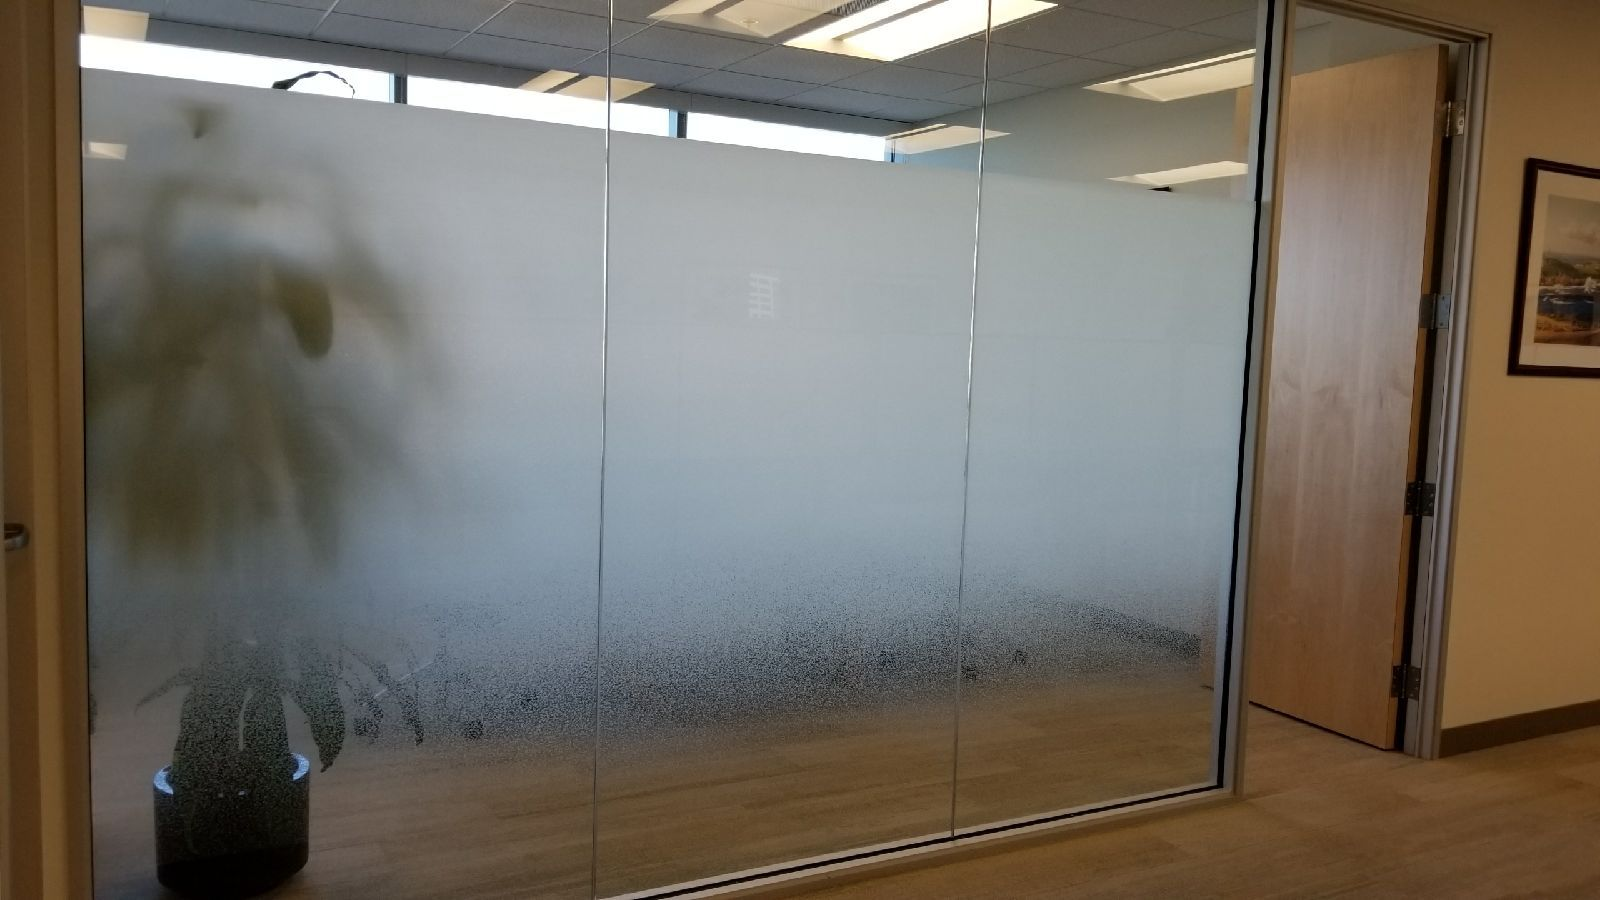 Solyx Gradient Window Film Application From Reflections Glass Tinting Inc Of Livermore Ca Adds Privacy Commercial Window Tinting Window Film Tinted Windows